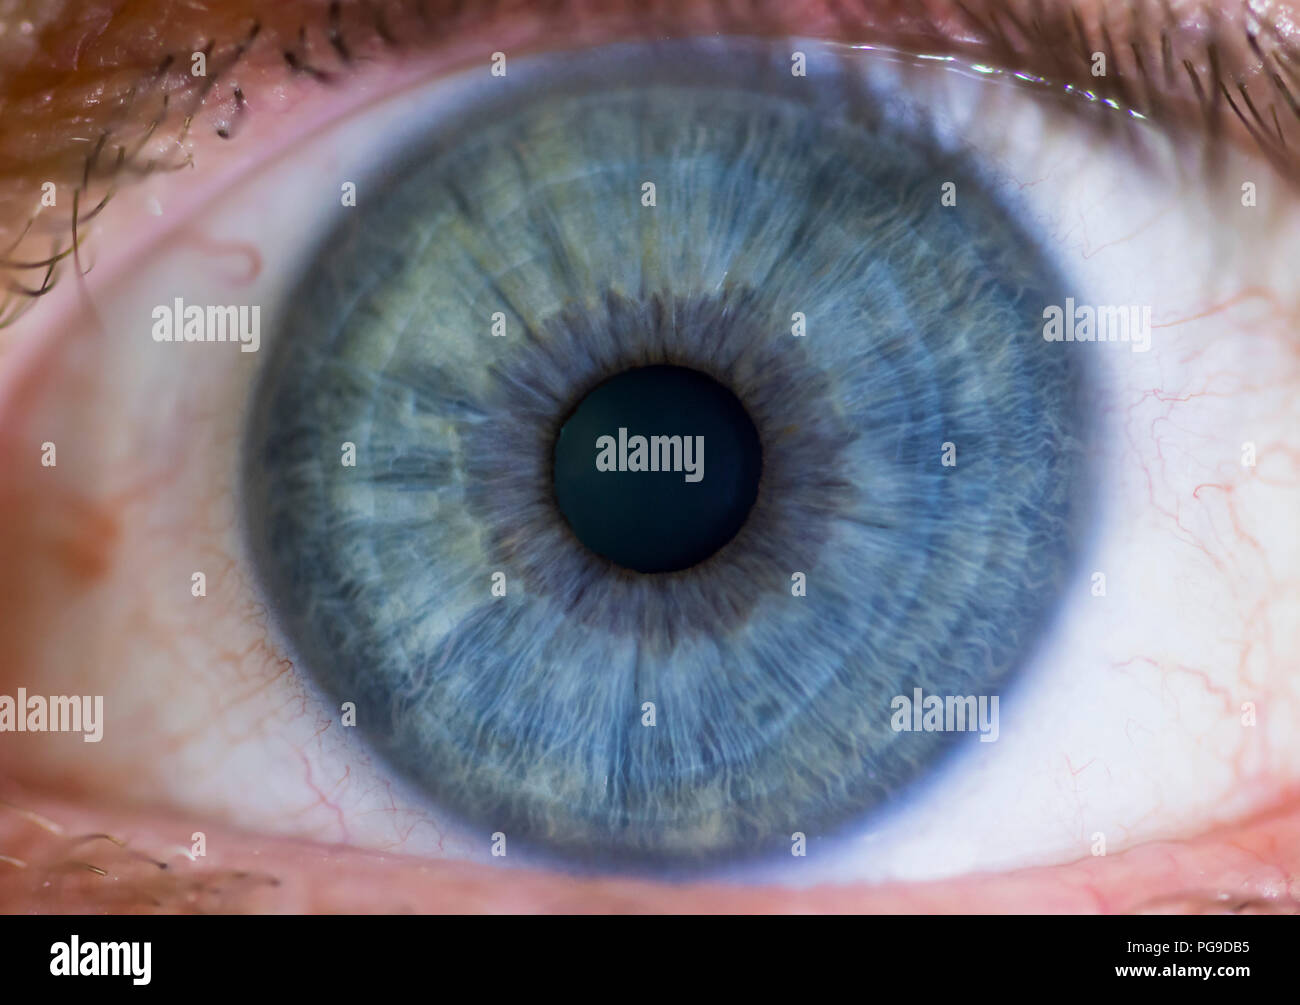 Male human eye macro of a man's blue eyes looking into the lens. - Stock Image